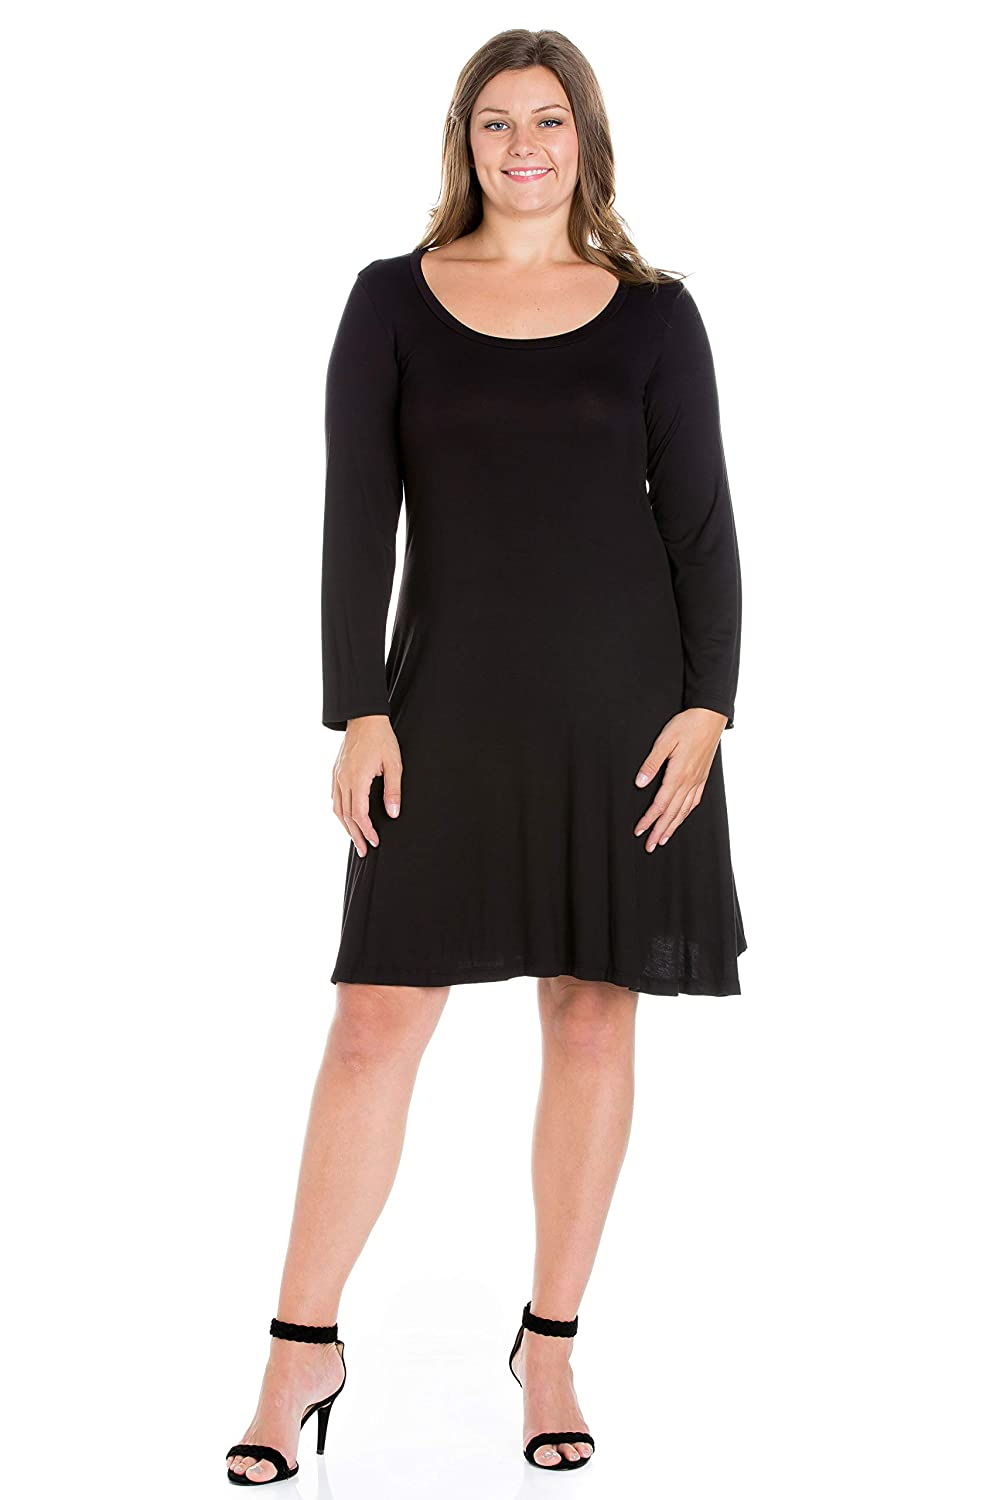 8bccdf9fb6 24seven Comfort Apparel Women's Plus Size Long Sleeve Scoop Neck Knee Length  A Line Dress - Made in USA - (Sizes 1XL-6XL) at Amazon Women's Clothing  store: